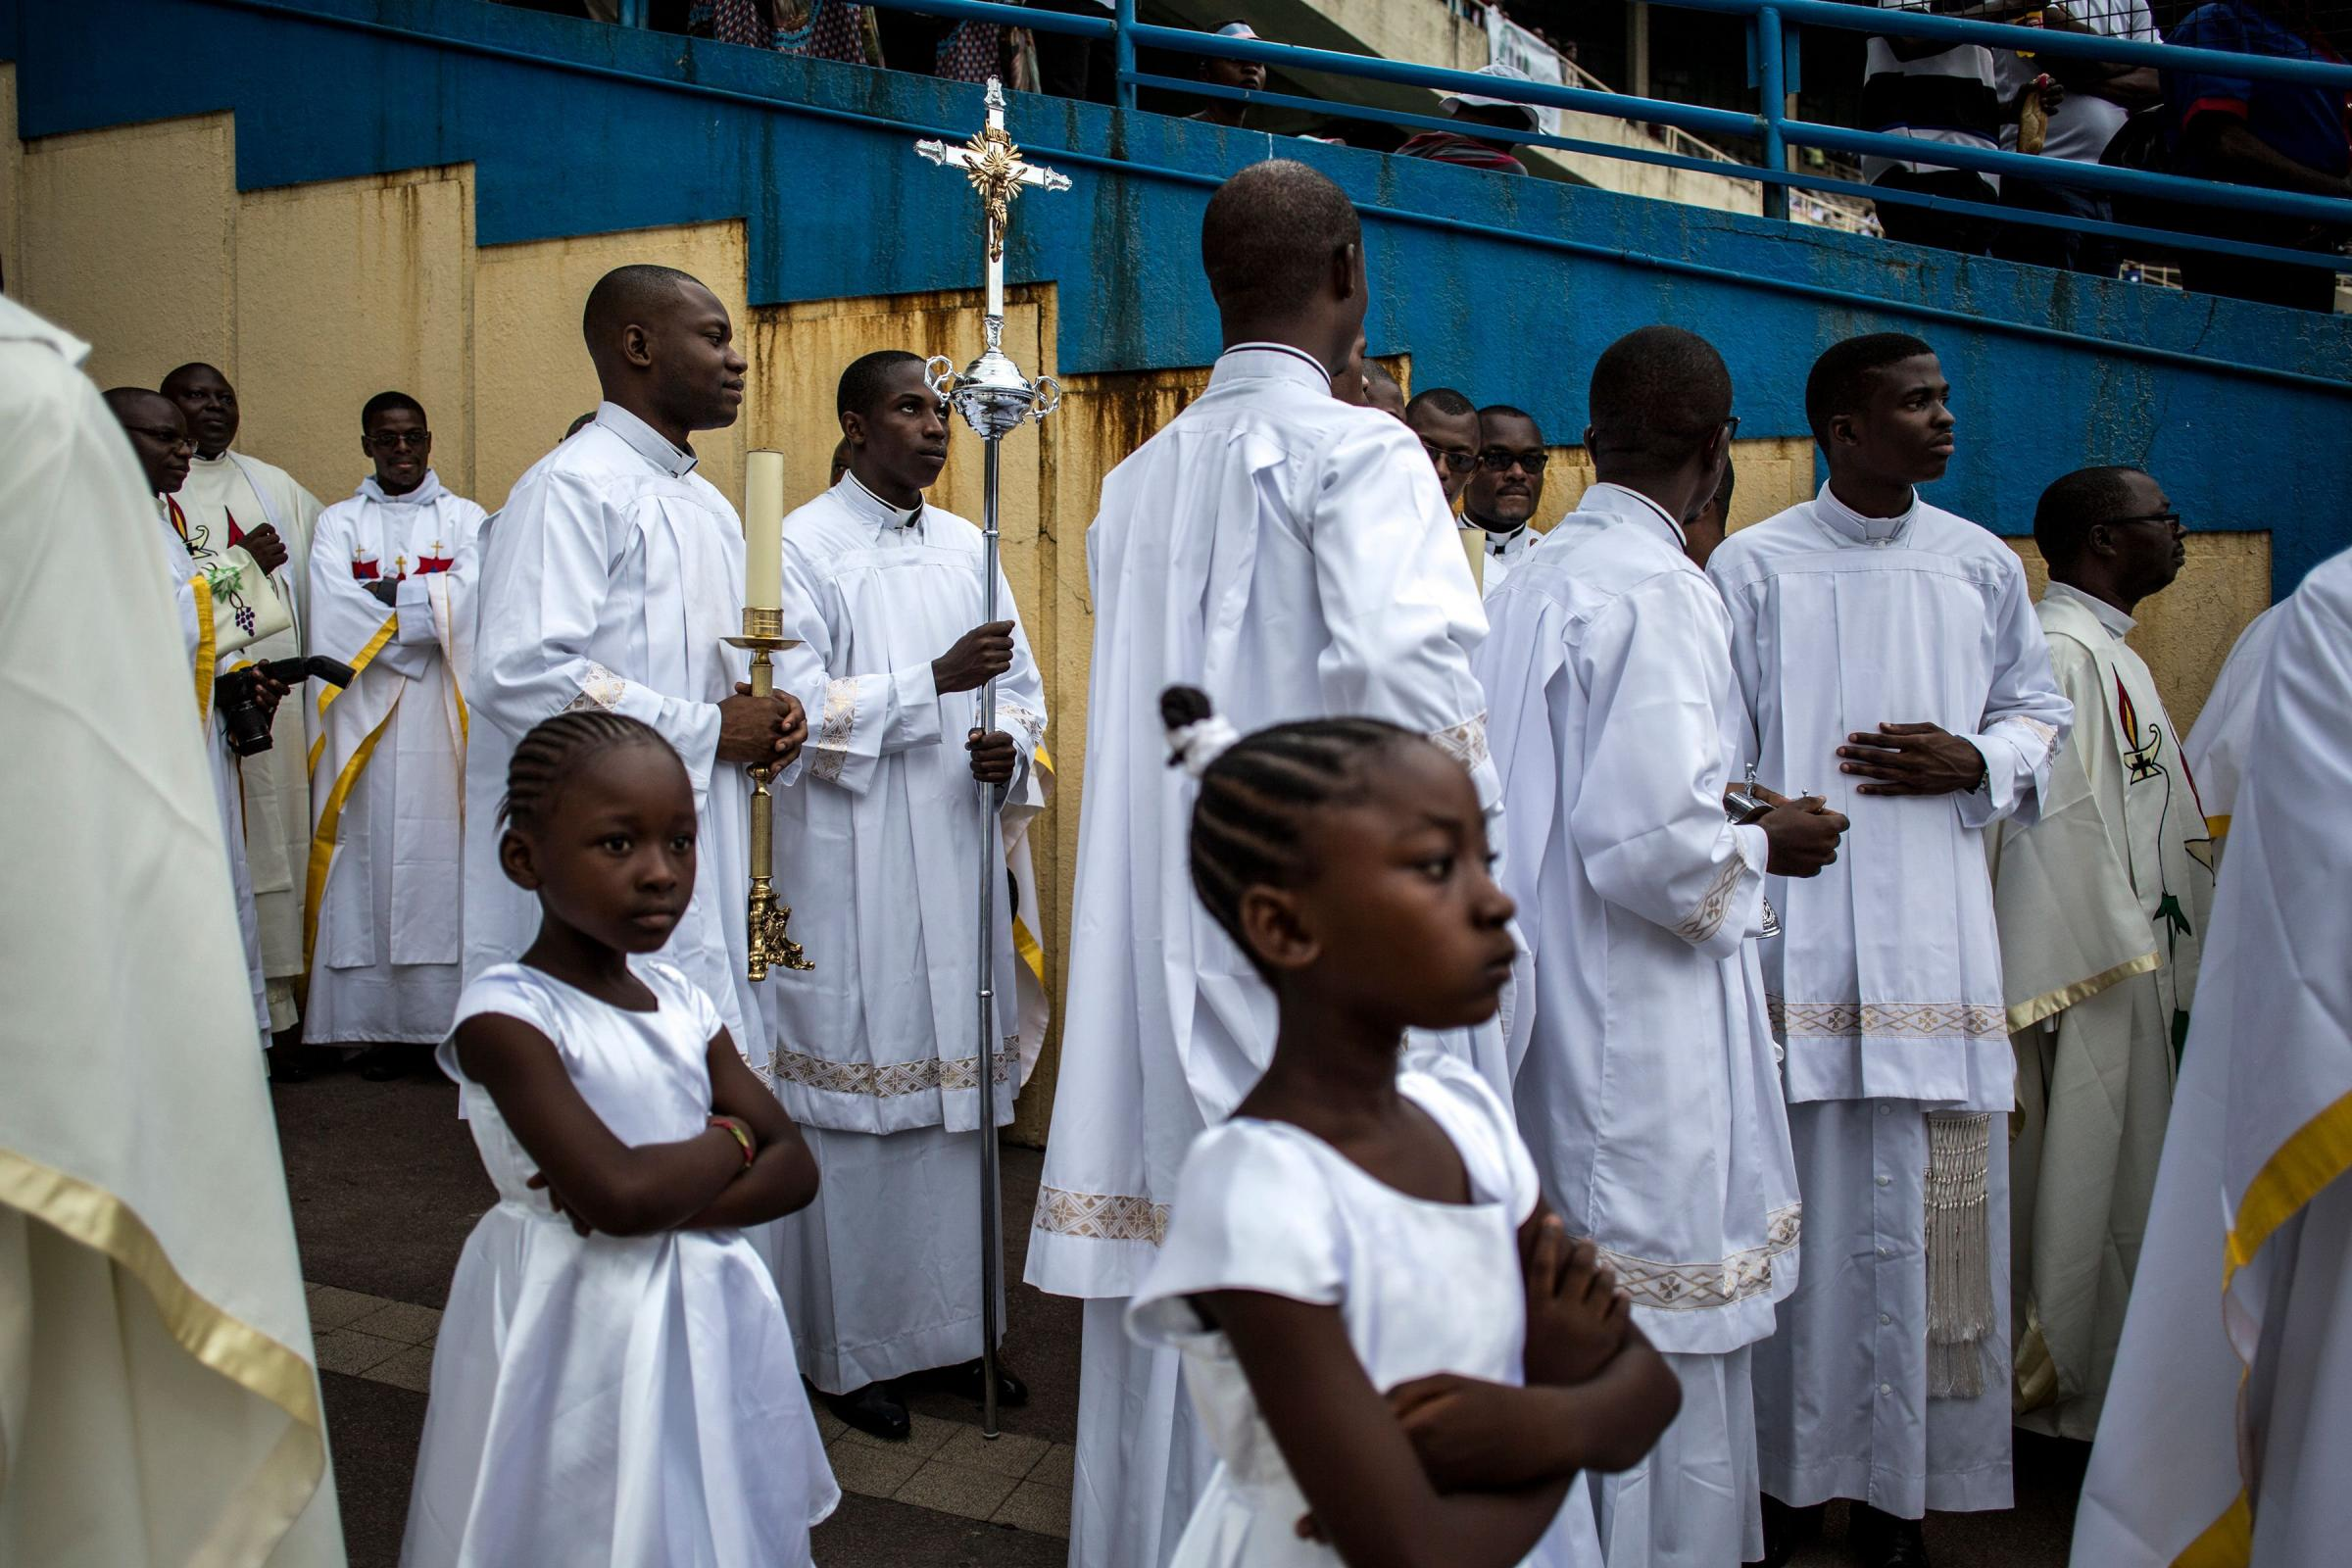 Traditionally, African priests have filled in for Scottish counterparts while they are on holiday